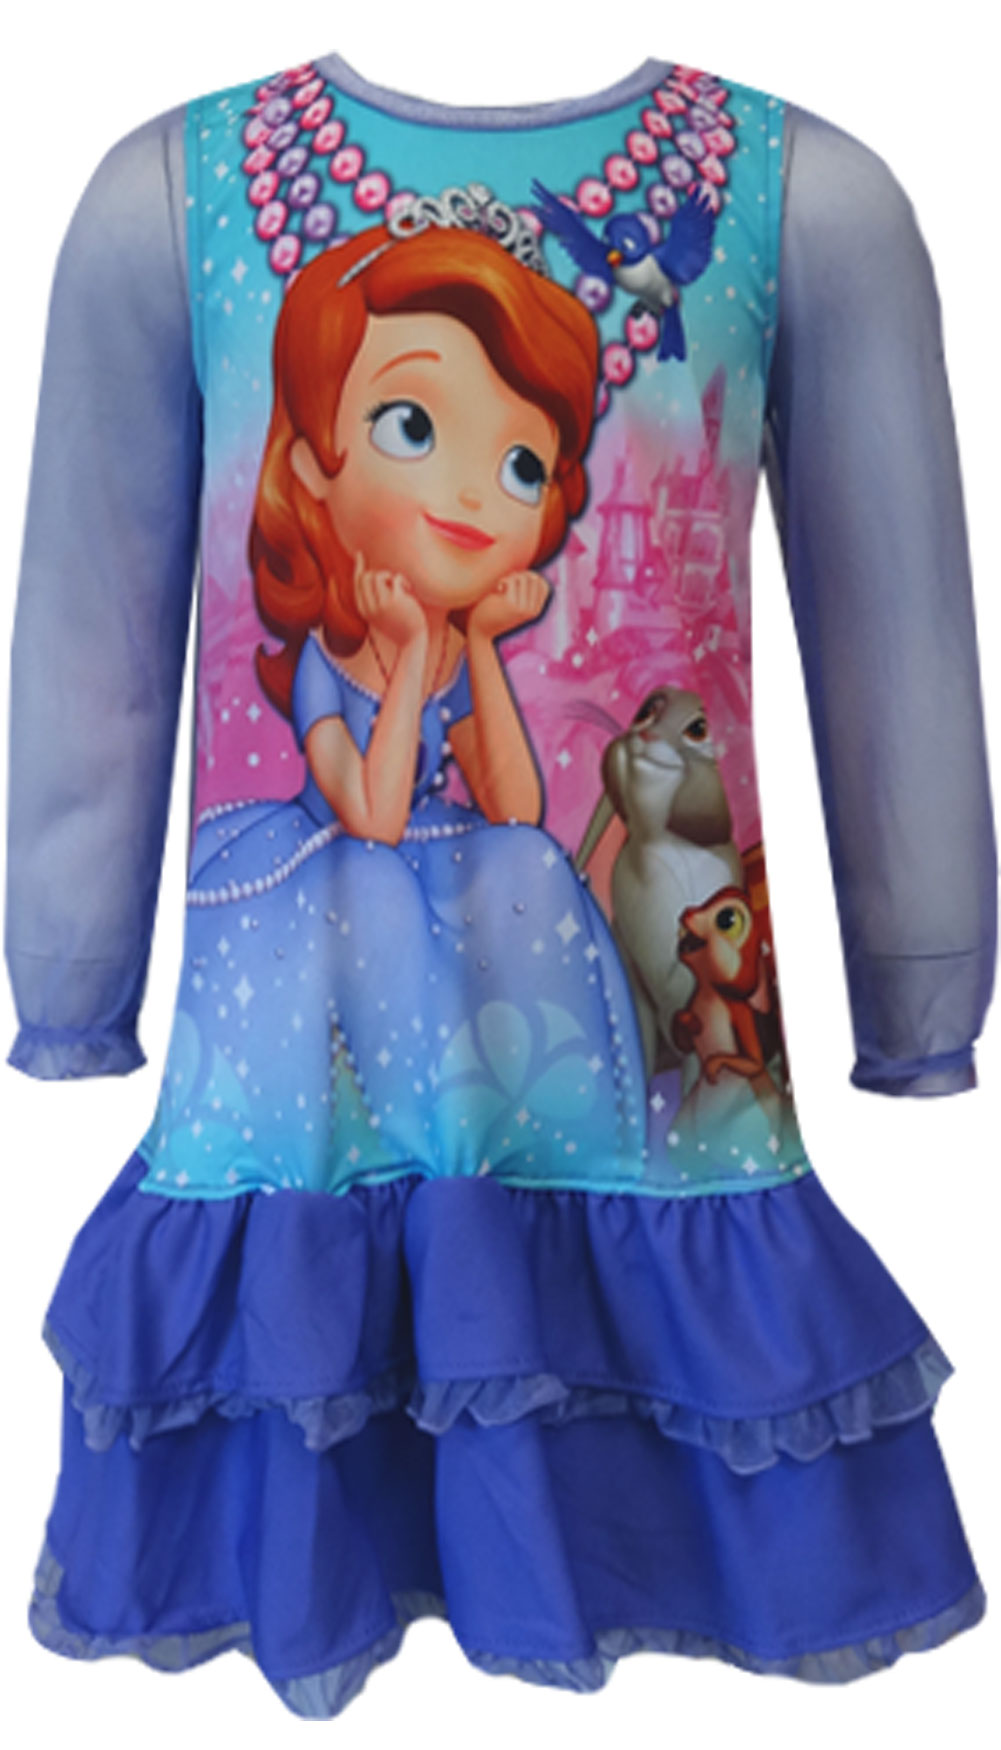 c7a797b077 Disney Sofia The First Daydreaming Toddler Nightgown for girls - Item ID   DY004TD